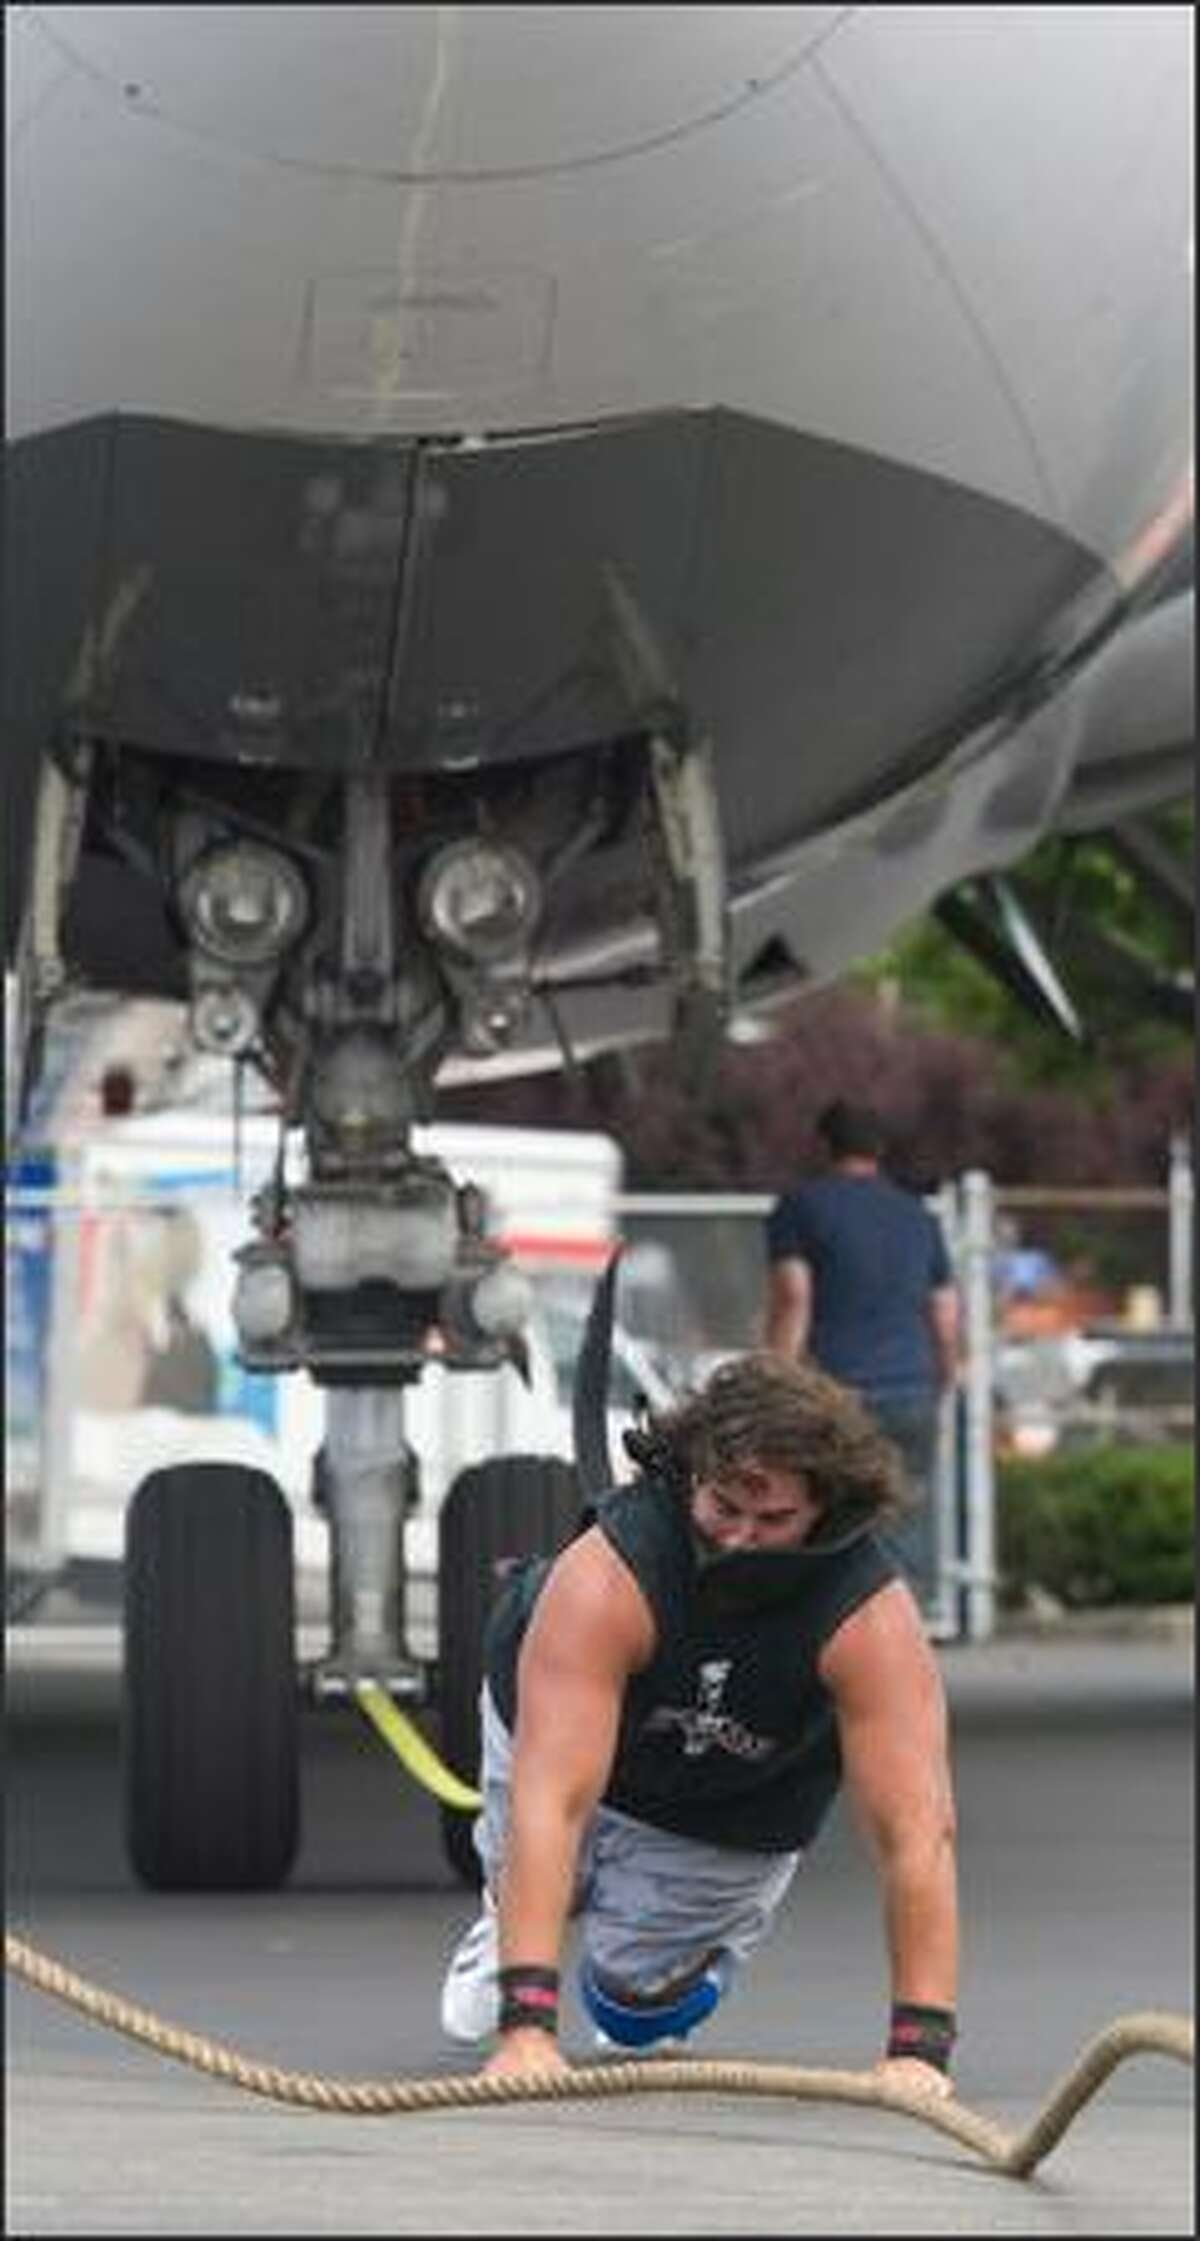 Tacoma strongman Mark Kirsch falls as his harness breaks while pulling a 200,000-pound Boeing 767 cargo jet at the Big Brothers Big Sisters Big Plane Pull at Boeing Field. Kirsch did pull the jet between 20 and 30 feet using a replacement harness.